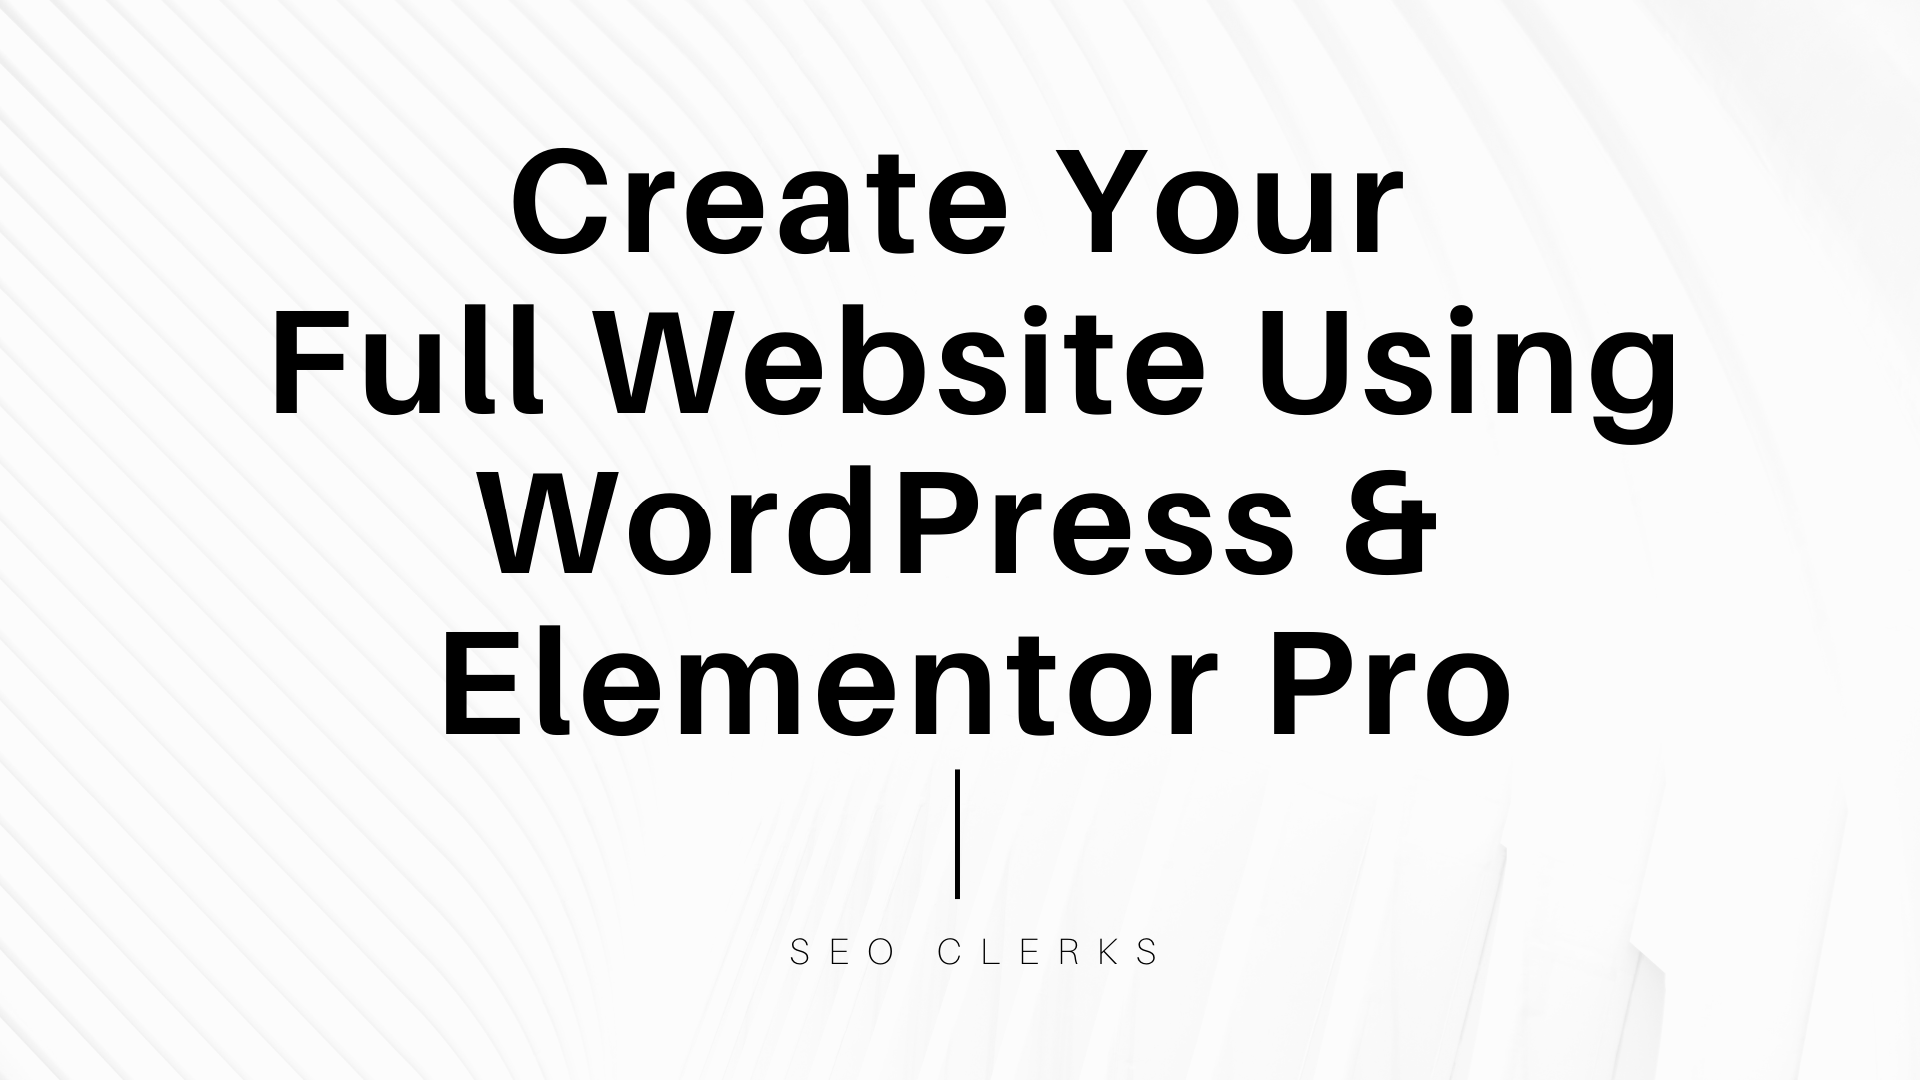 I will create your wordpress website using elementor pro page builder